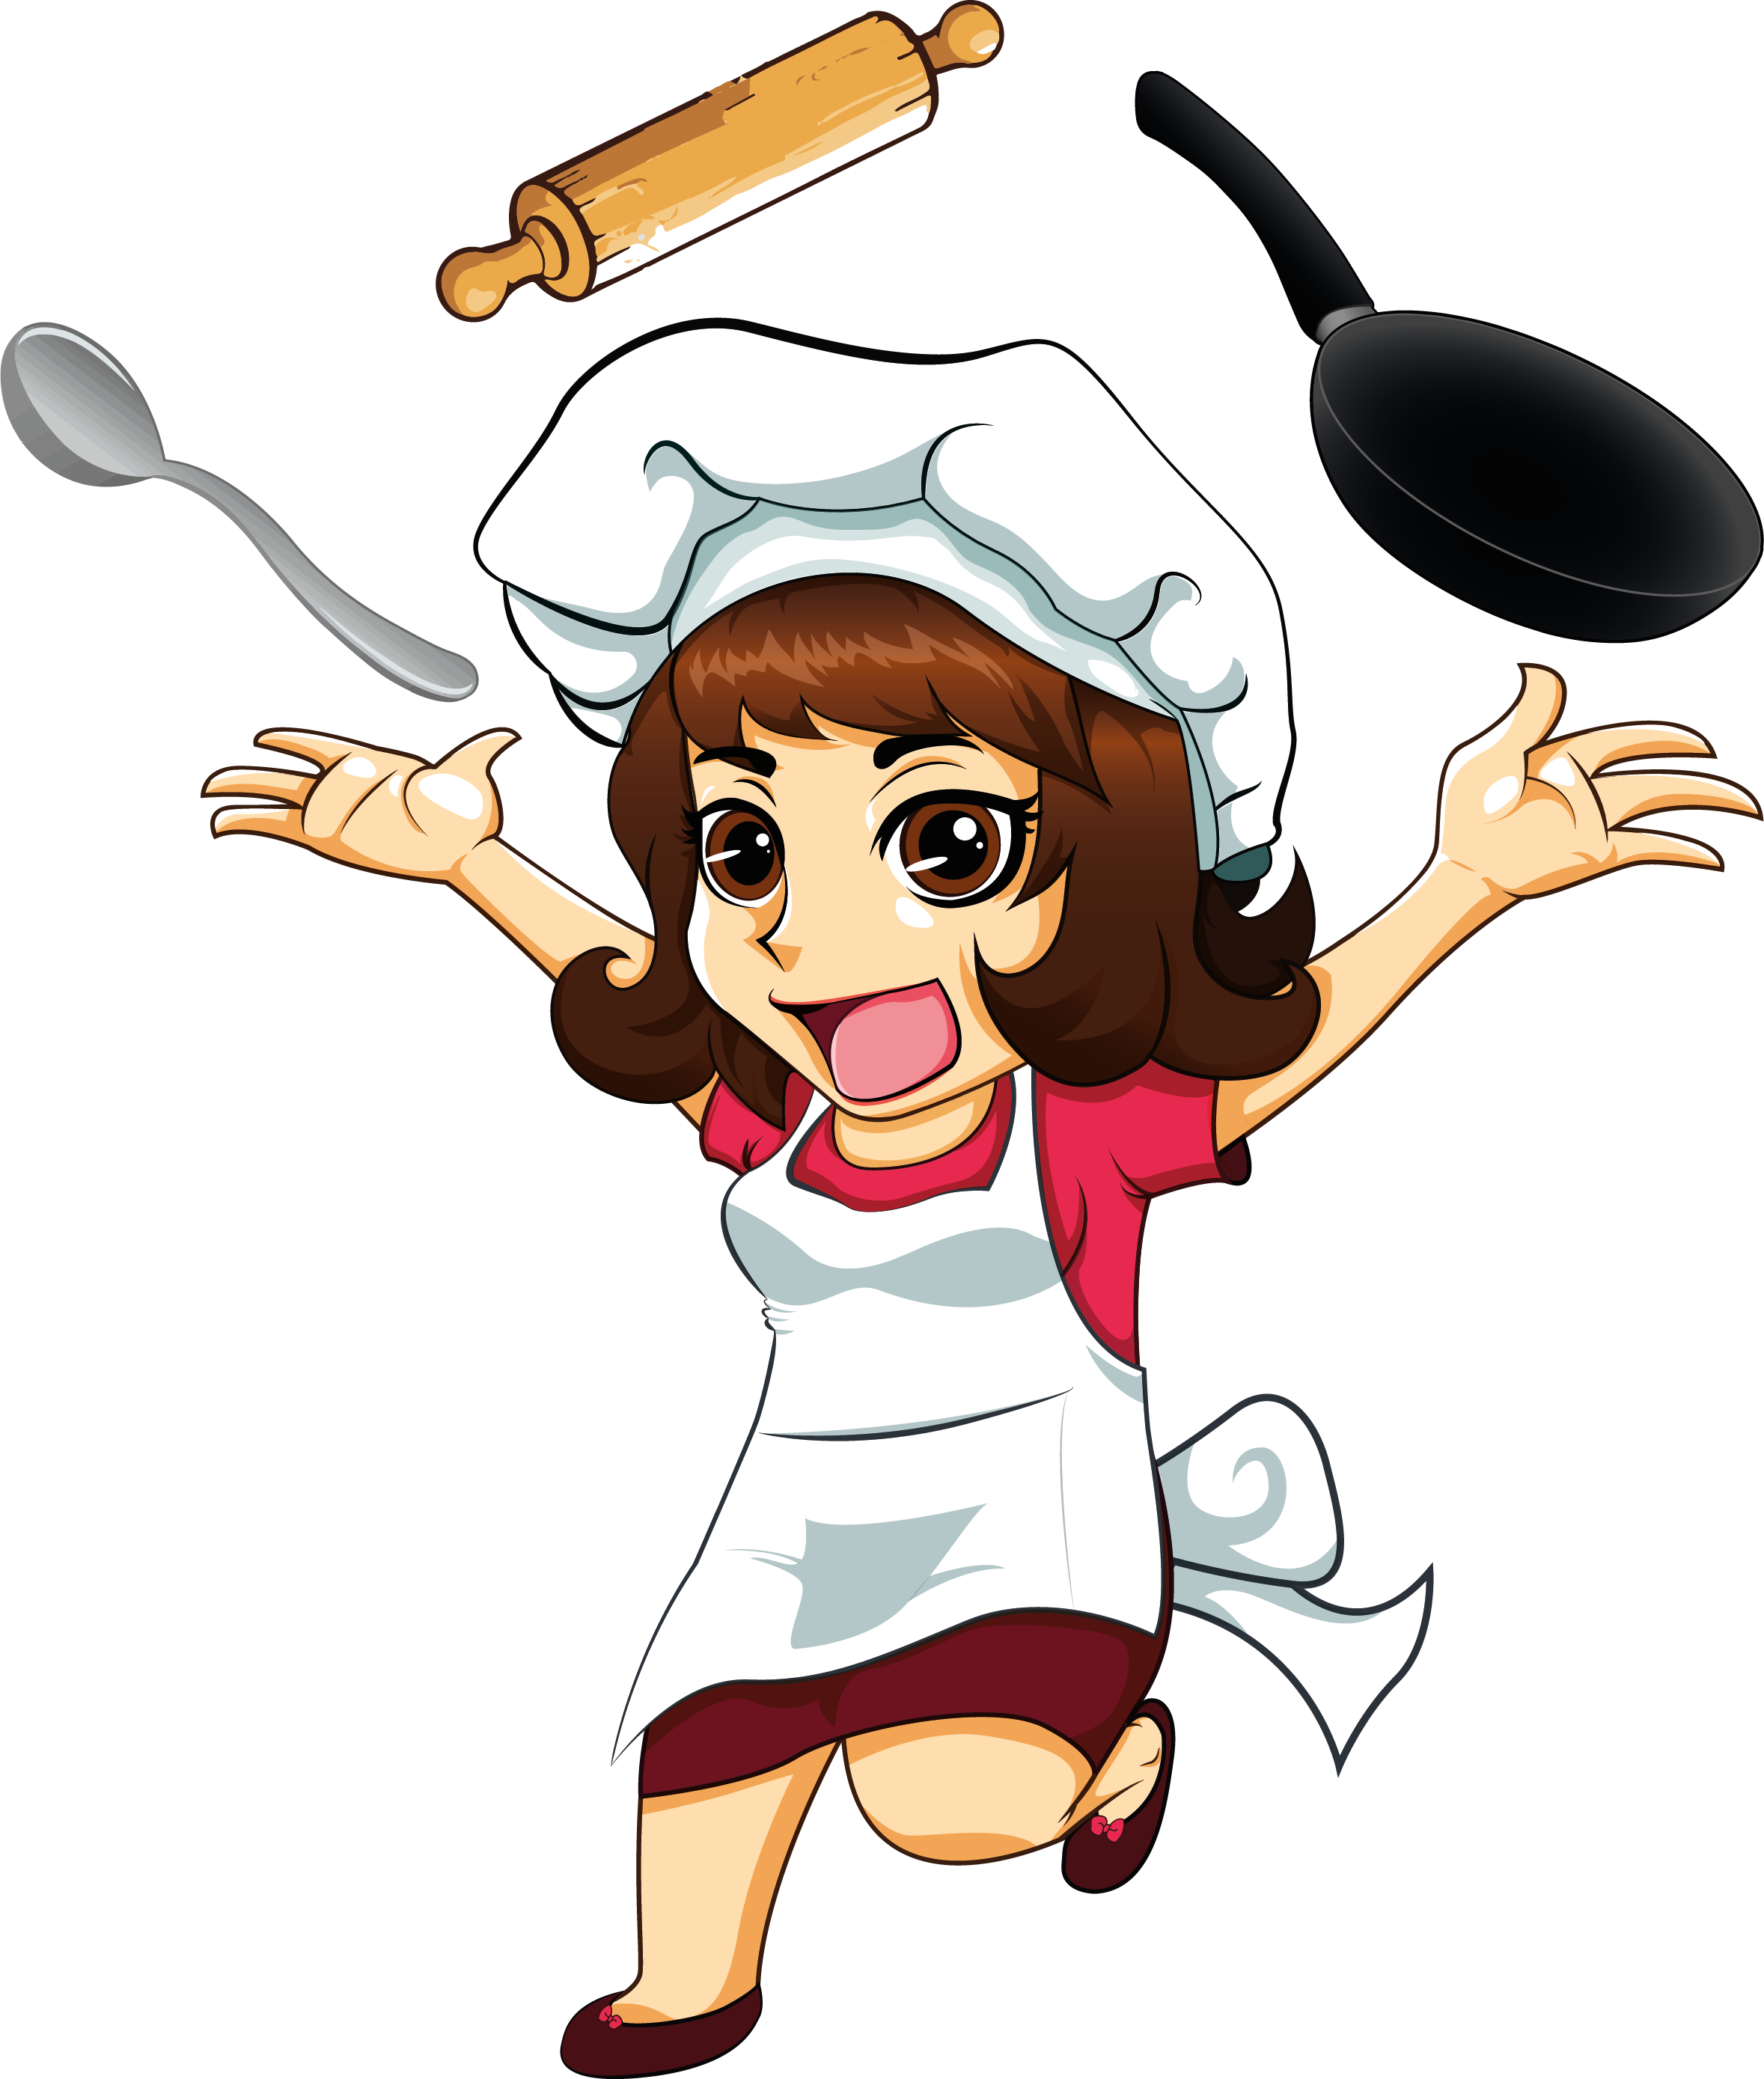 Images of lady png. Hands clipart chef